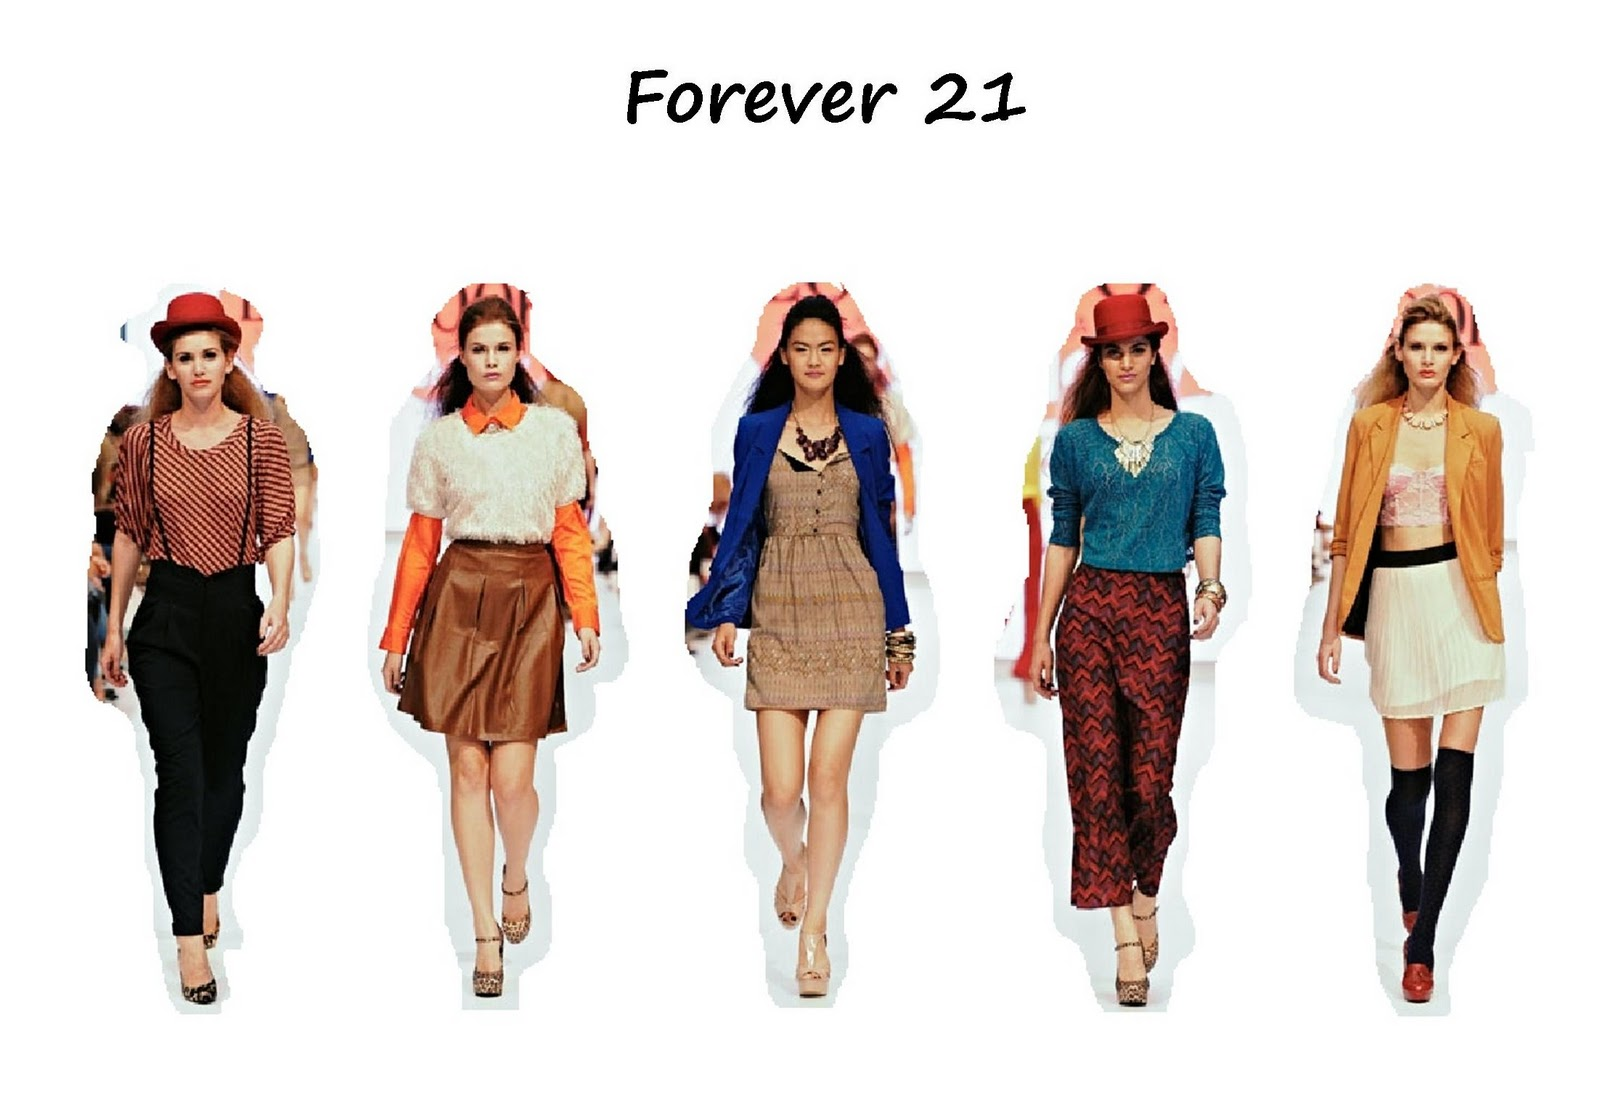 21 Forever Forever 21 Driverlayer Search Engine